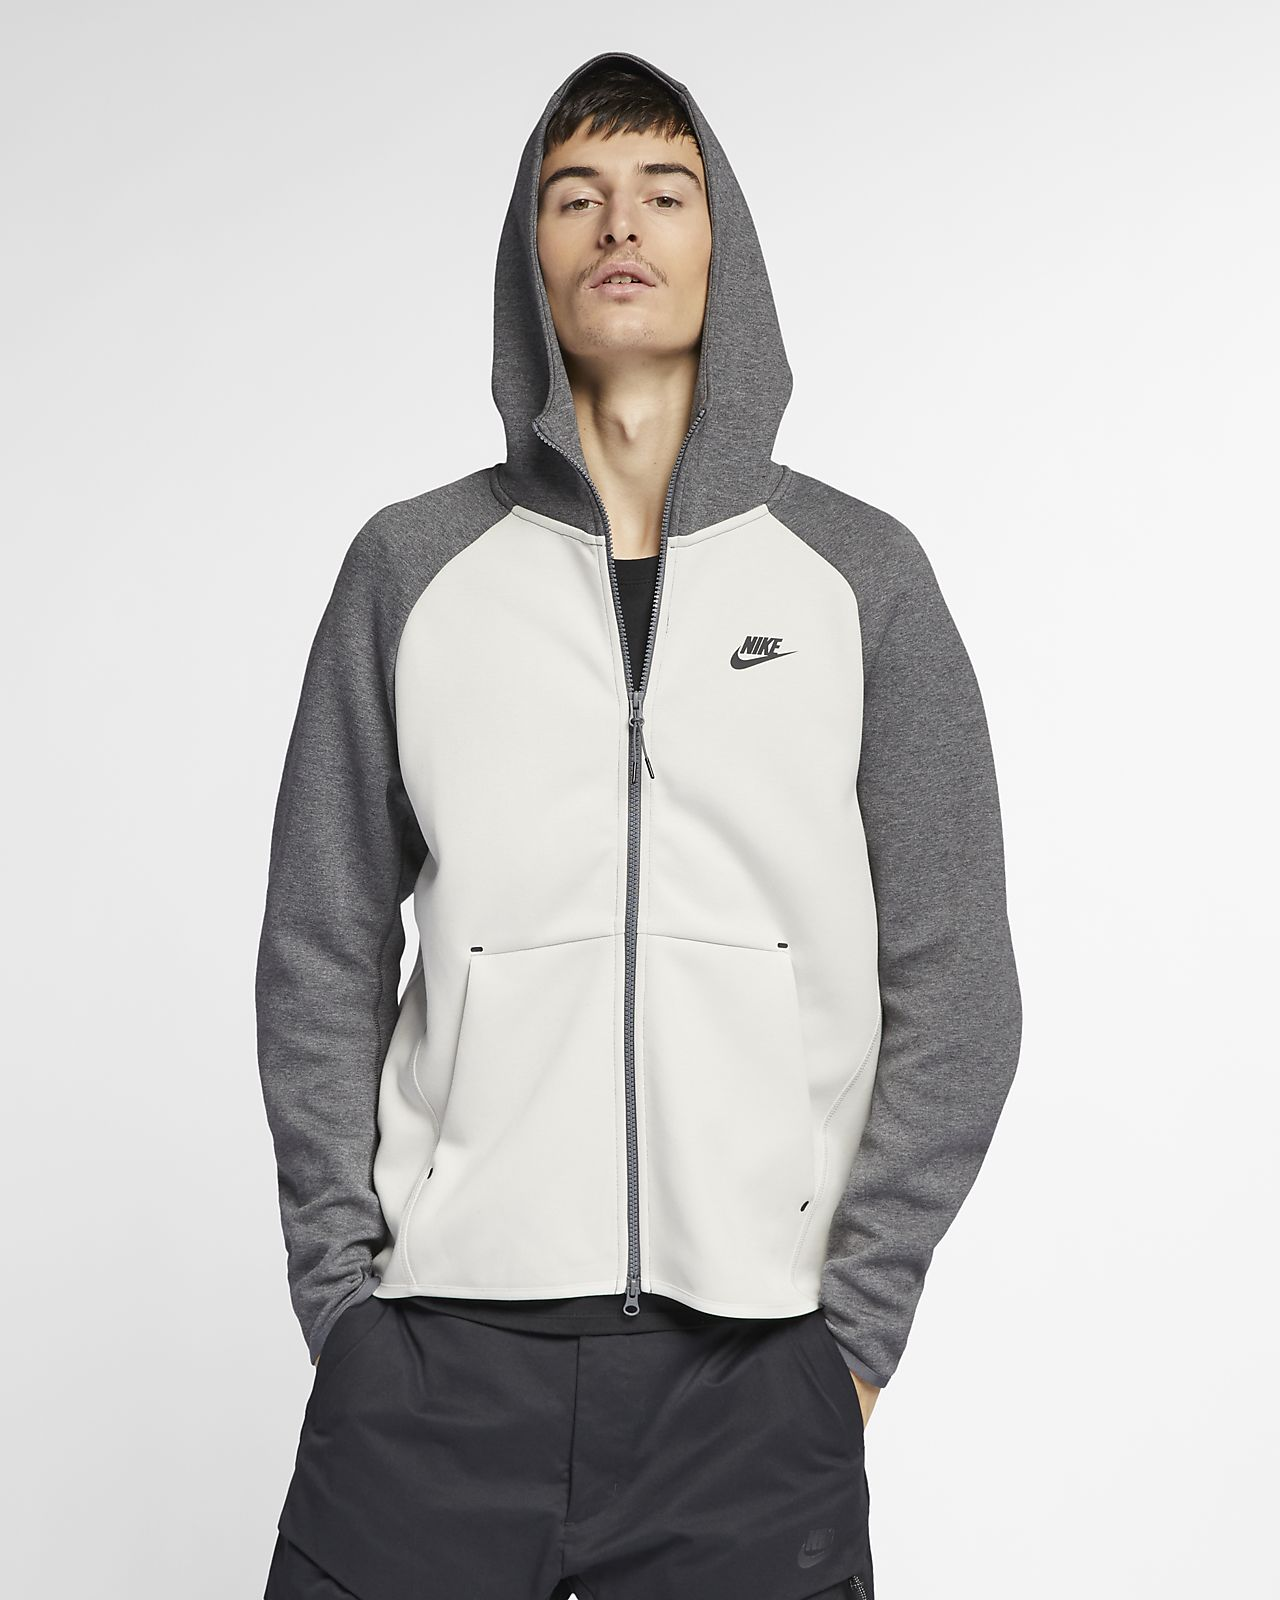 e2feacb5d618 Nike Sportswear Tech Fleece Men s Full-Zip Hoodie. Nike.com GB